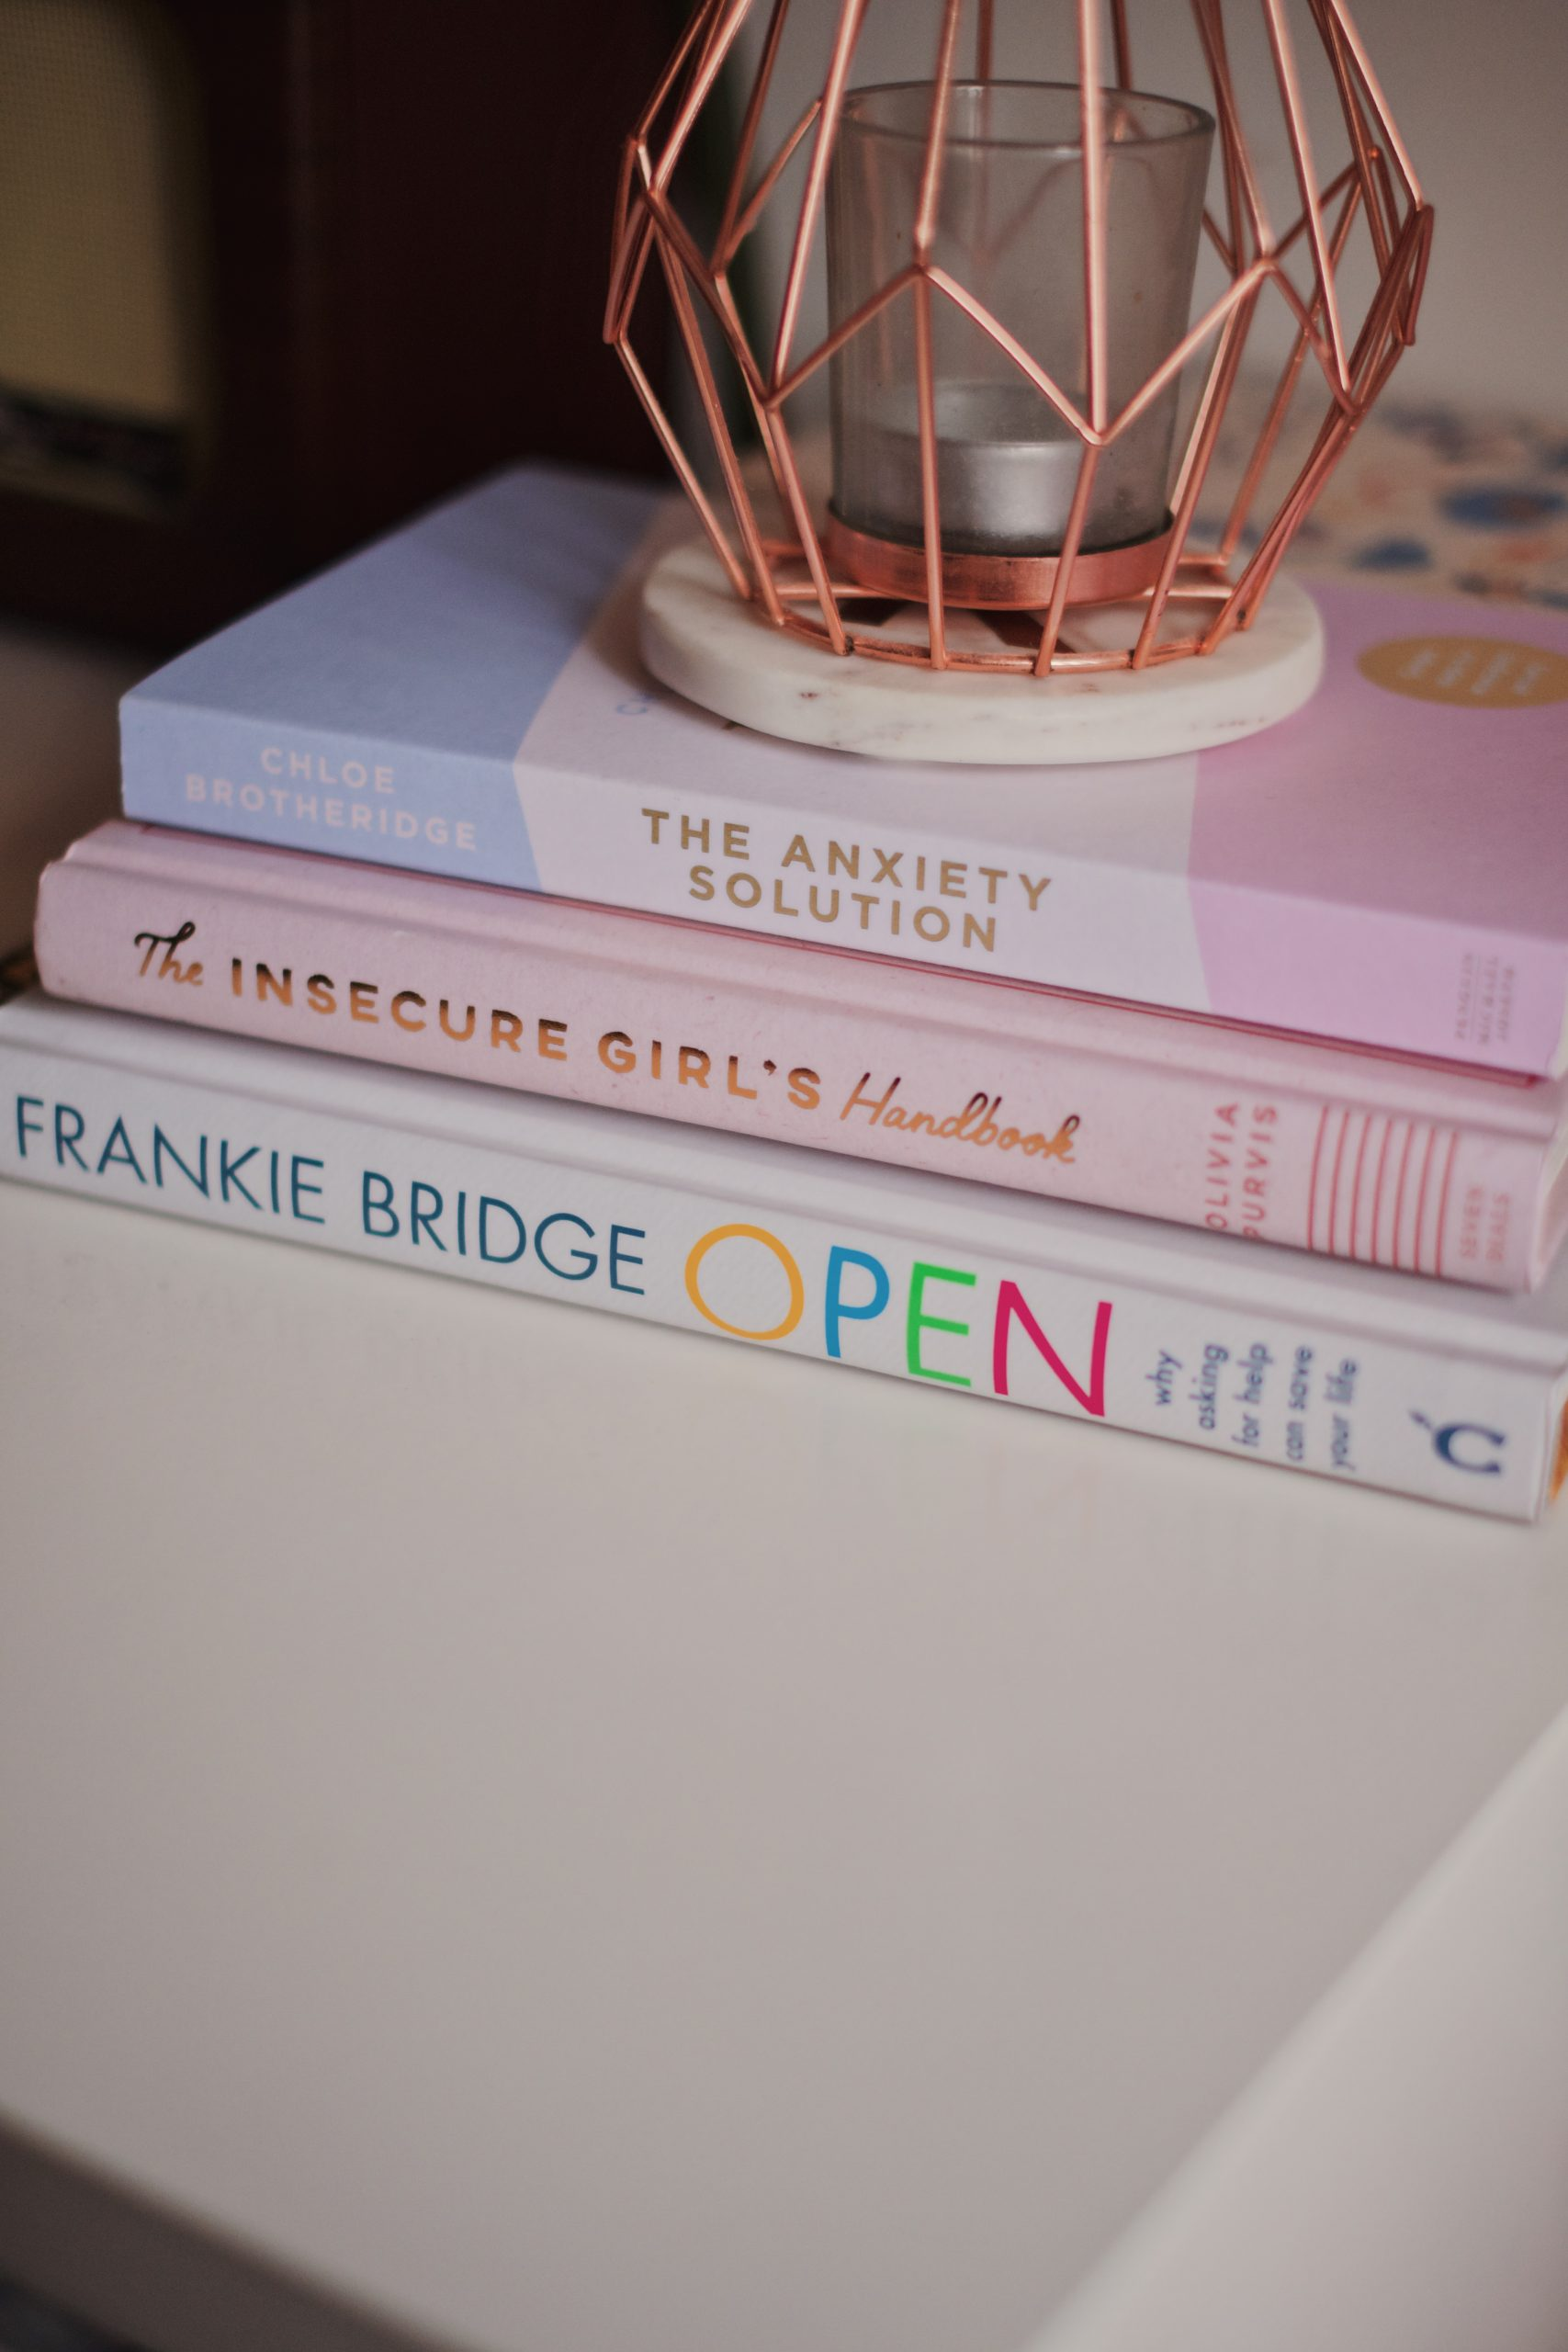 The Books I Read In January & February